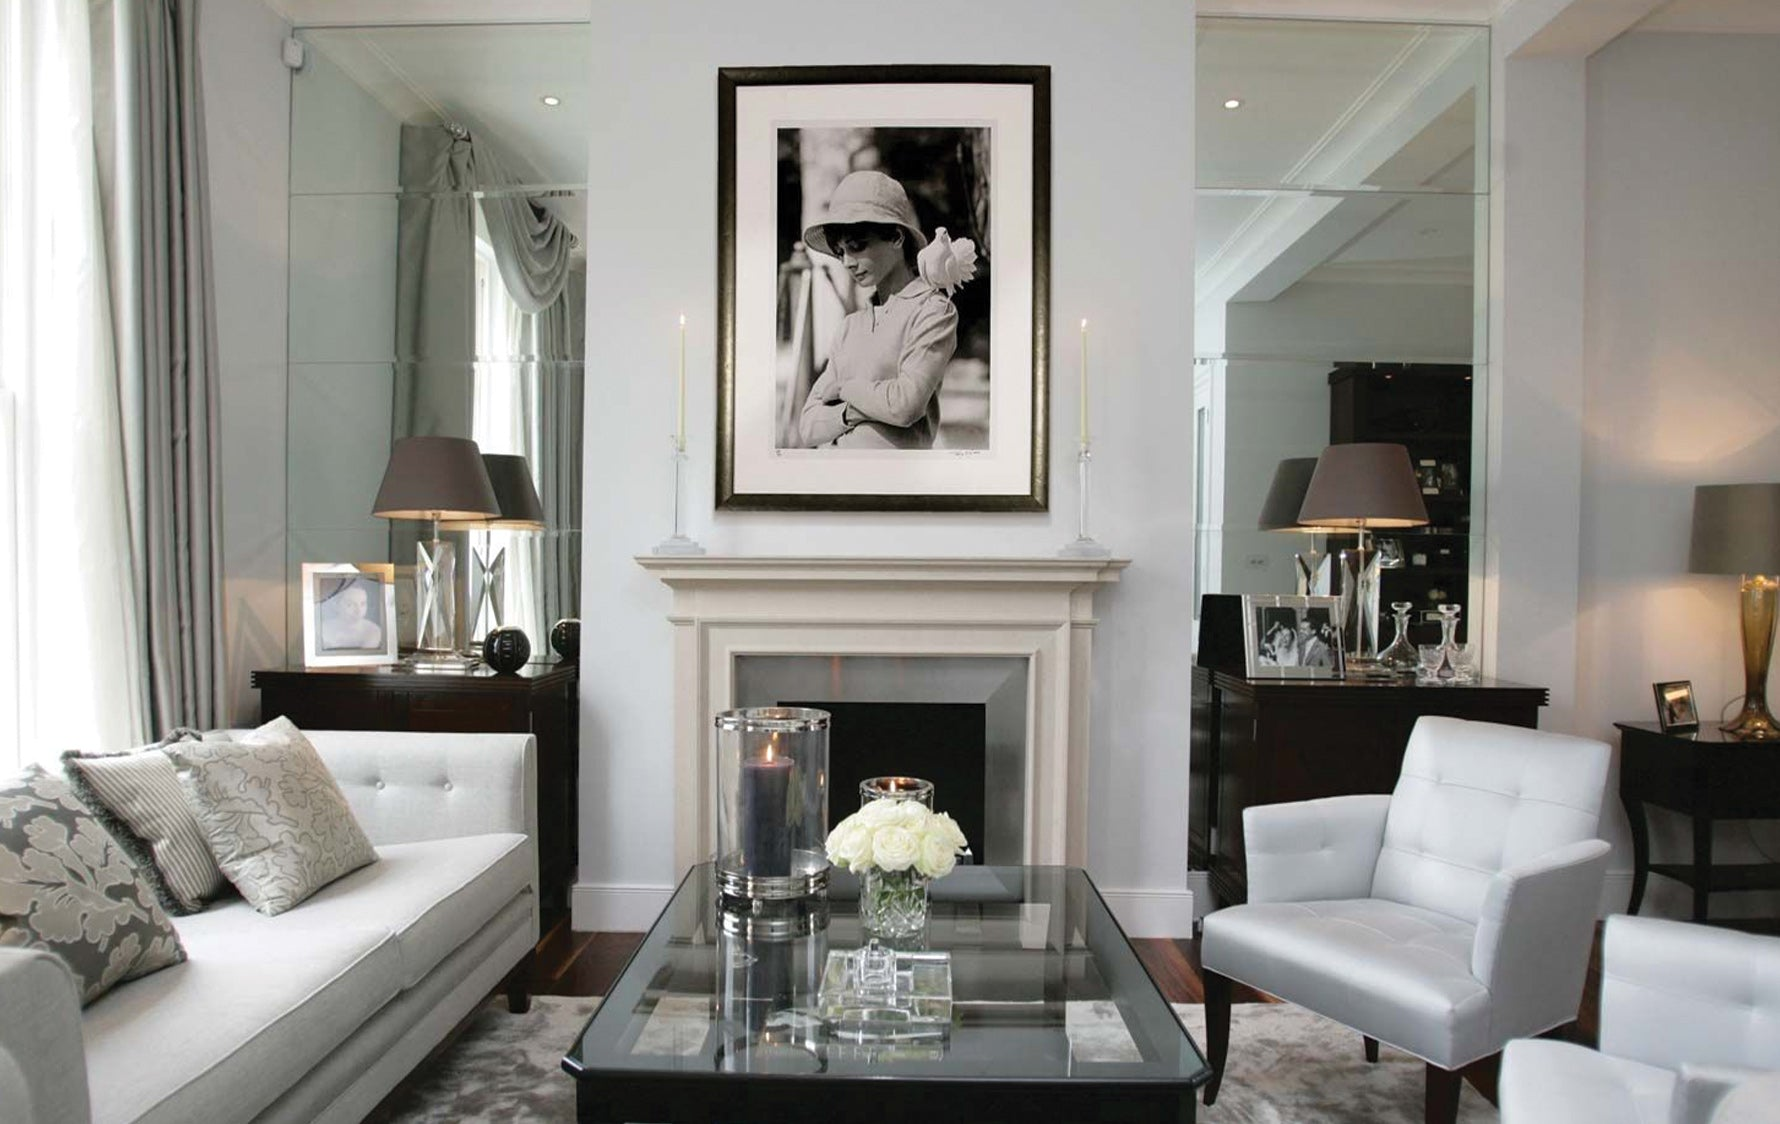 How To Get Your Room Proportions Right In Interior Design - Intarya - LuxDeco Style Guide